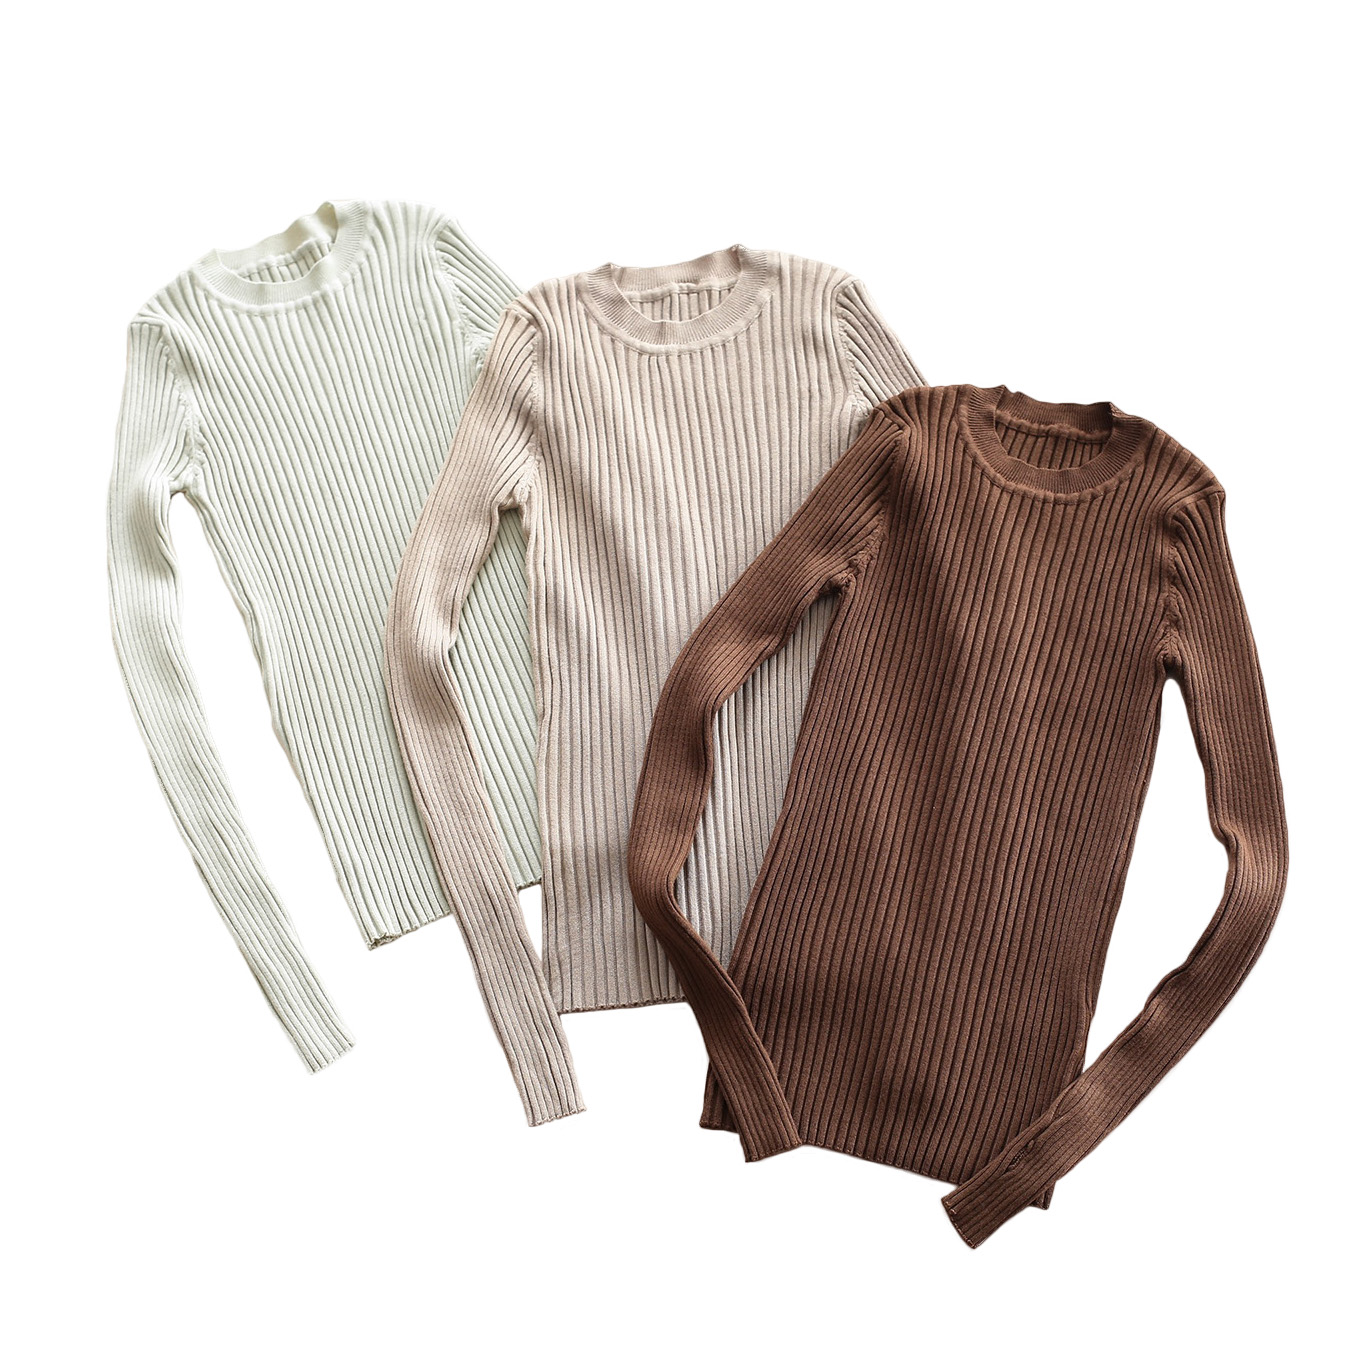 Crew Neck Ribbed Sweater Women Basic Slim Fit Rib Knitted Top Pullover Solid Long Sleeve Cotton Sweaters With Thumb Hole